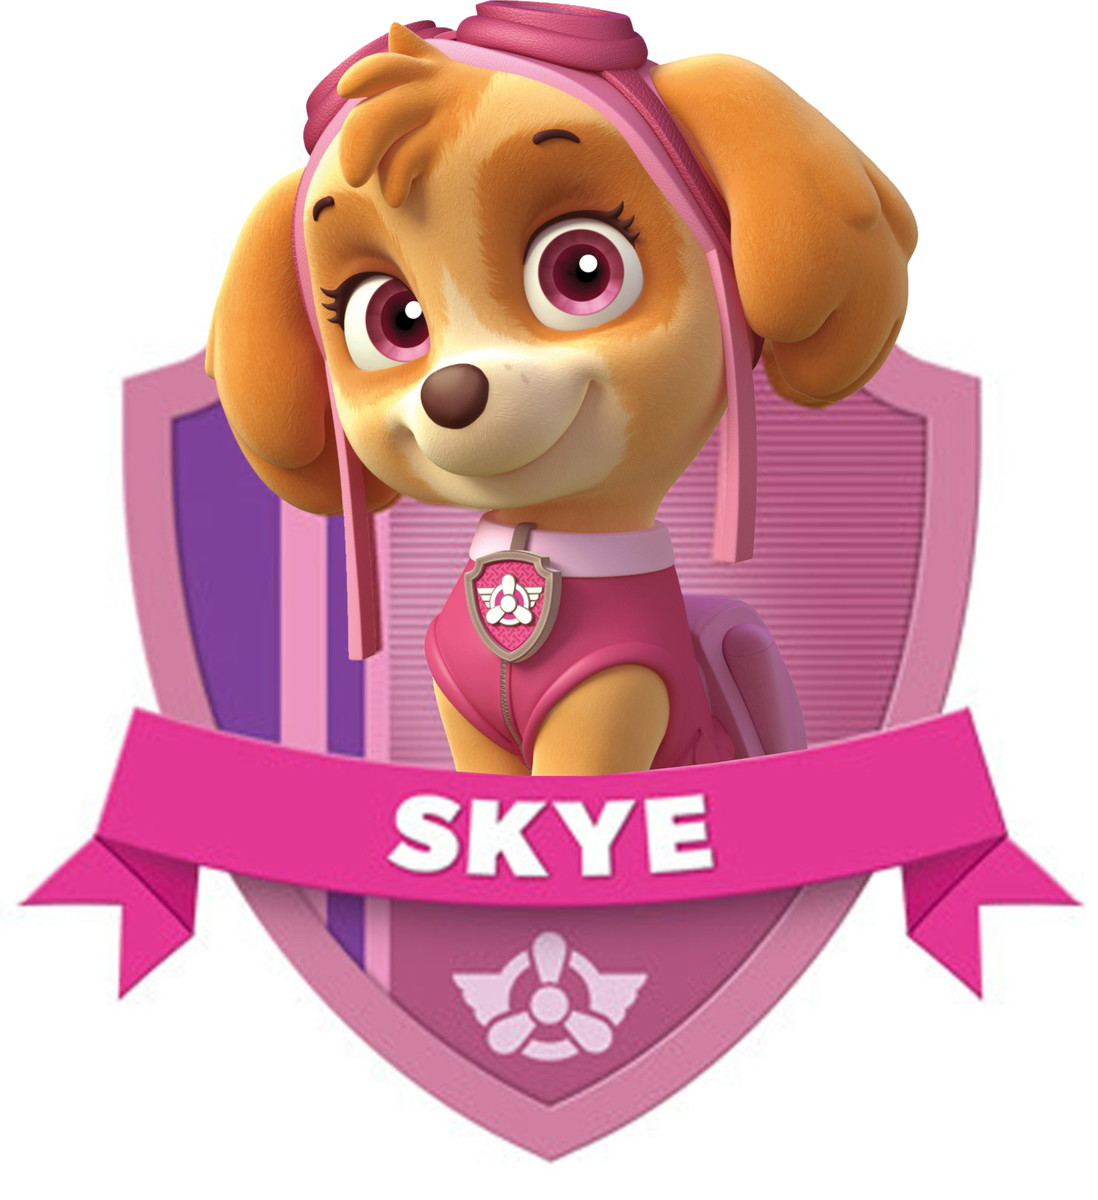 Skye patrulha canina download free clipart with a.